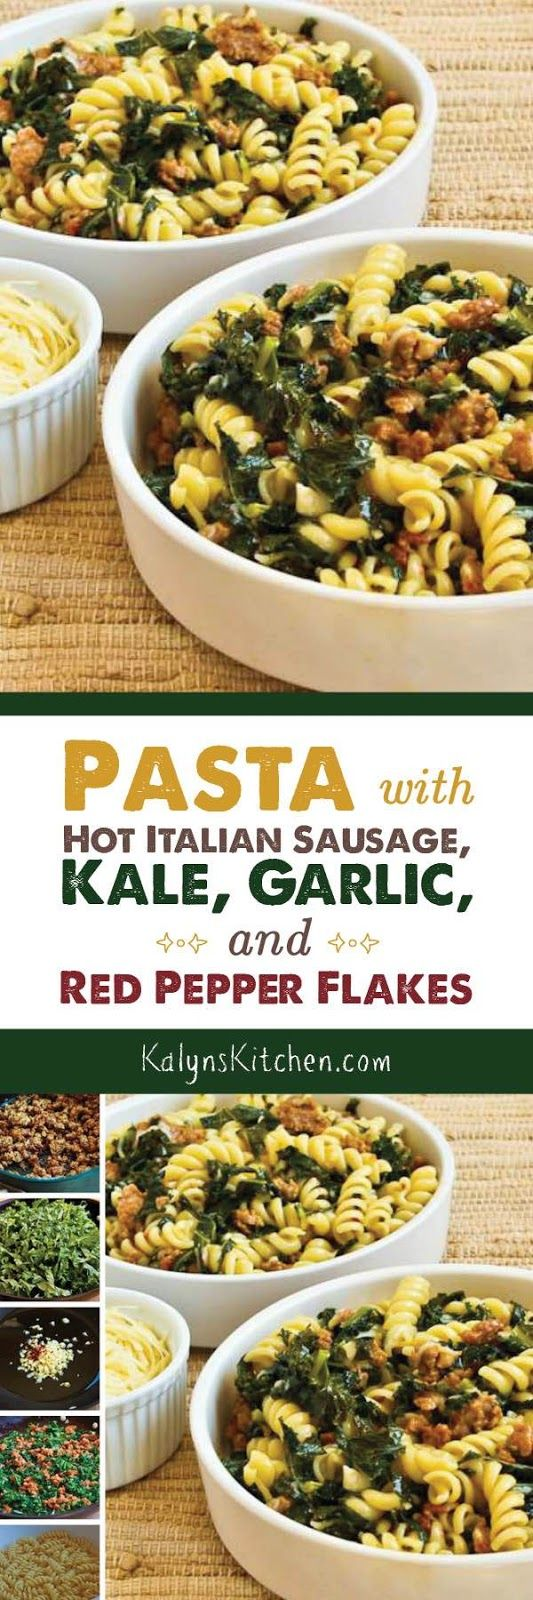 ... tomatoes italian sausage and kale vodka cream pasta with italian